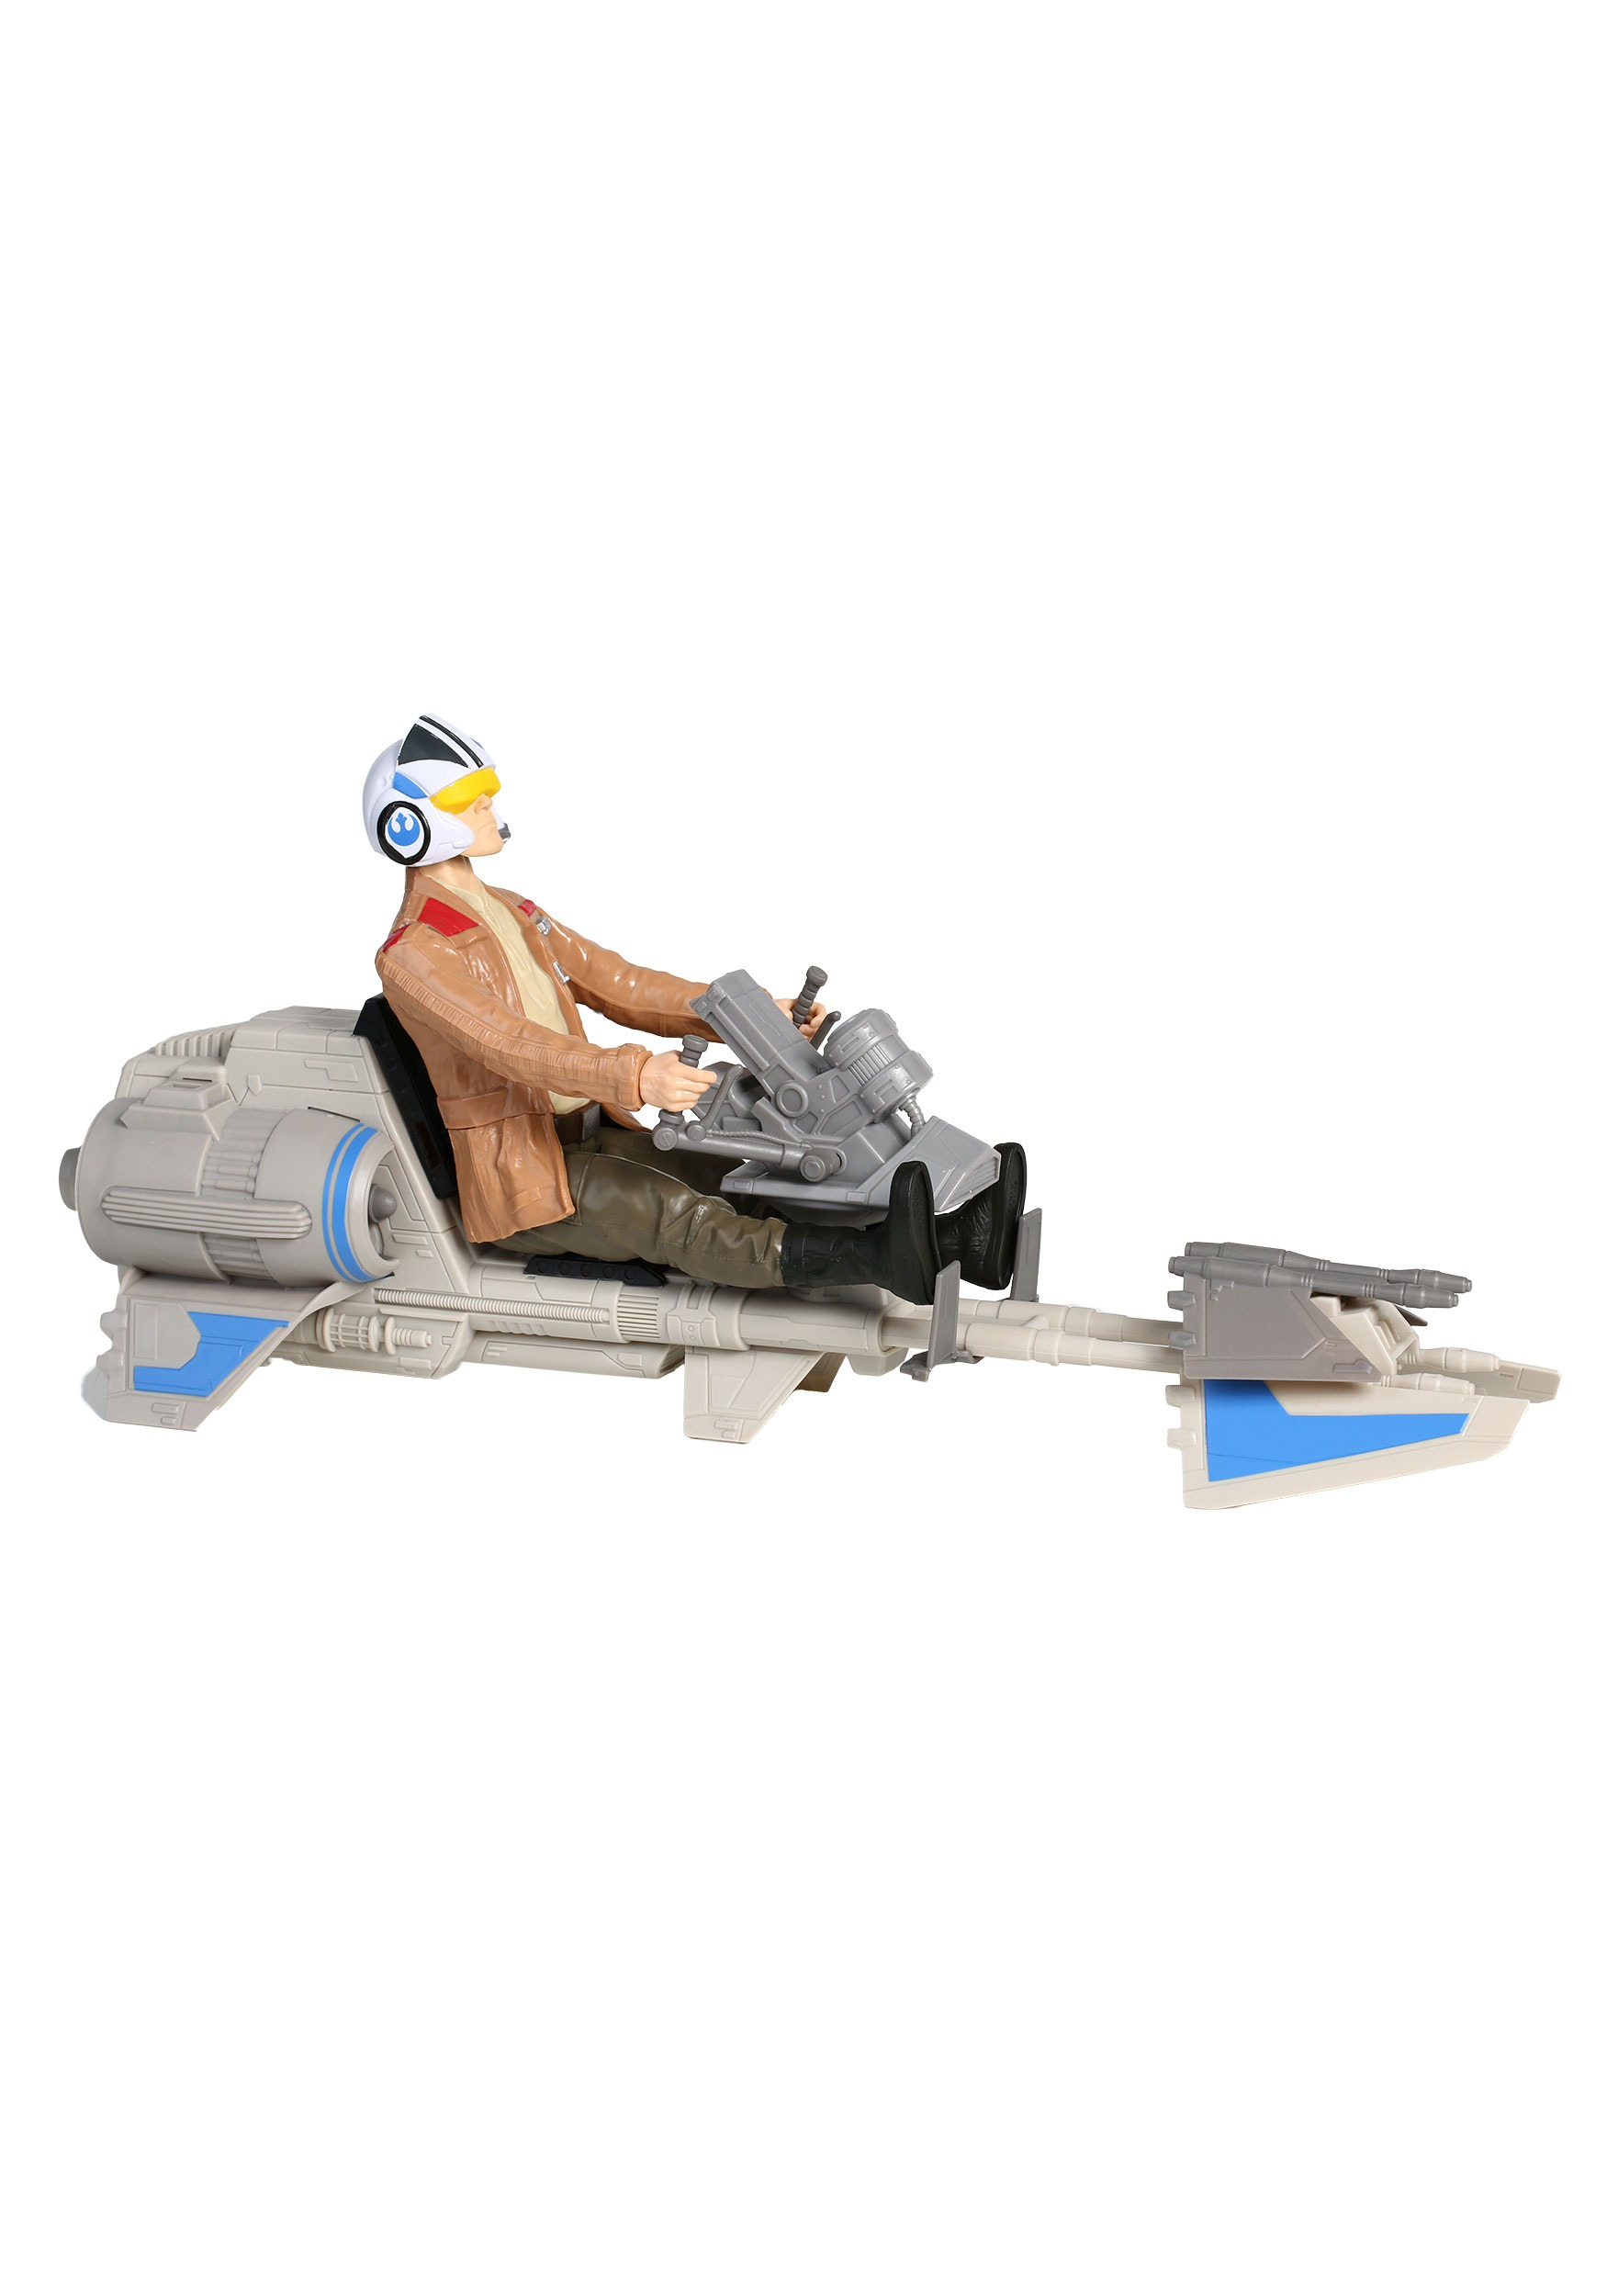 Star Wars Episode 7 Speeder Bike With Poe Dameron Figure as well Doctor Aphra 1 Review further Star Wars Episode 7 First Order Tie Fighter also Lego Star Wars The Force Awakens Vehicles as well Star Wars Darth Maul 1 Preview. on review star wars the force awakens 1